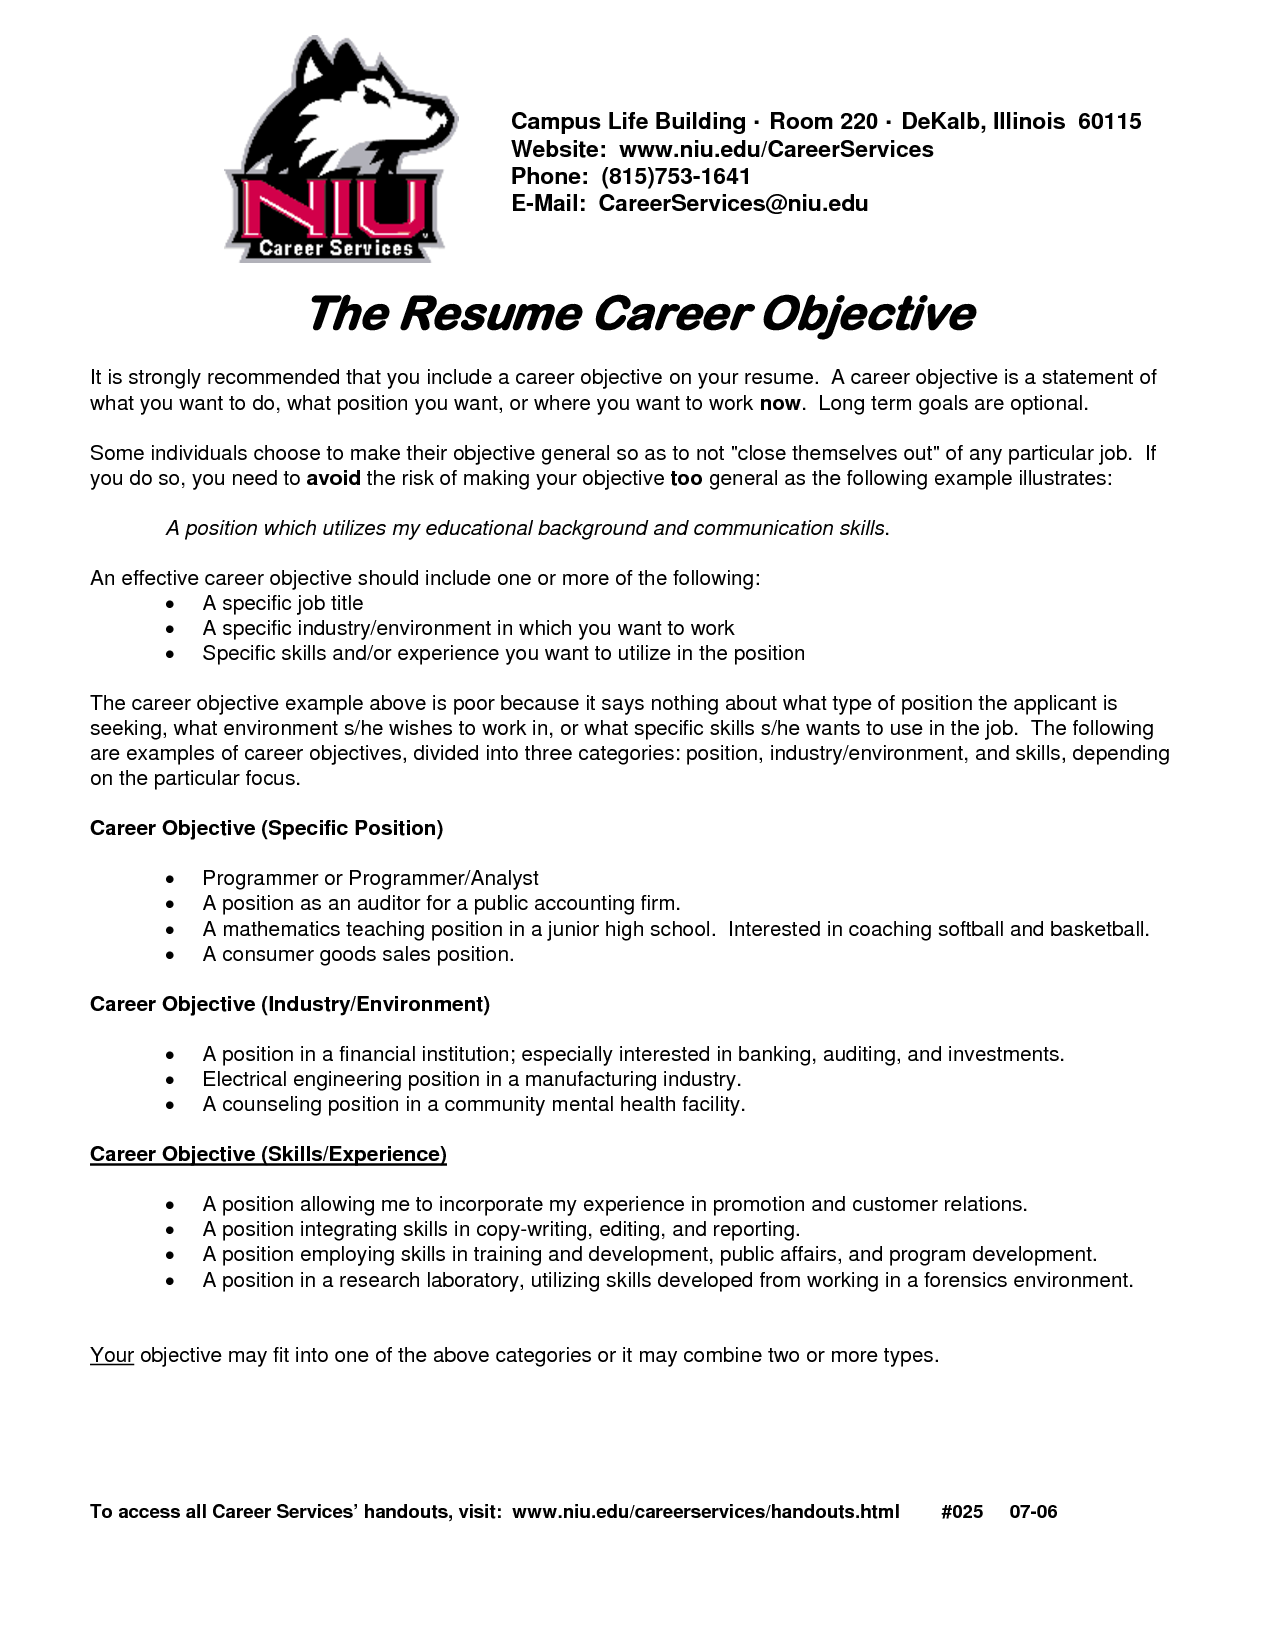 resume profile samples example skills section resumes template - Professional Resume Objective